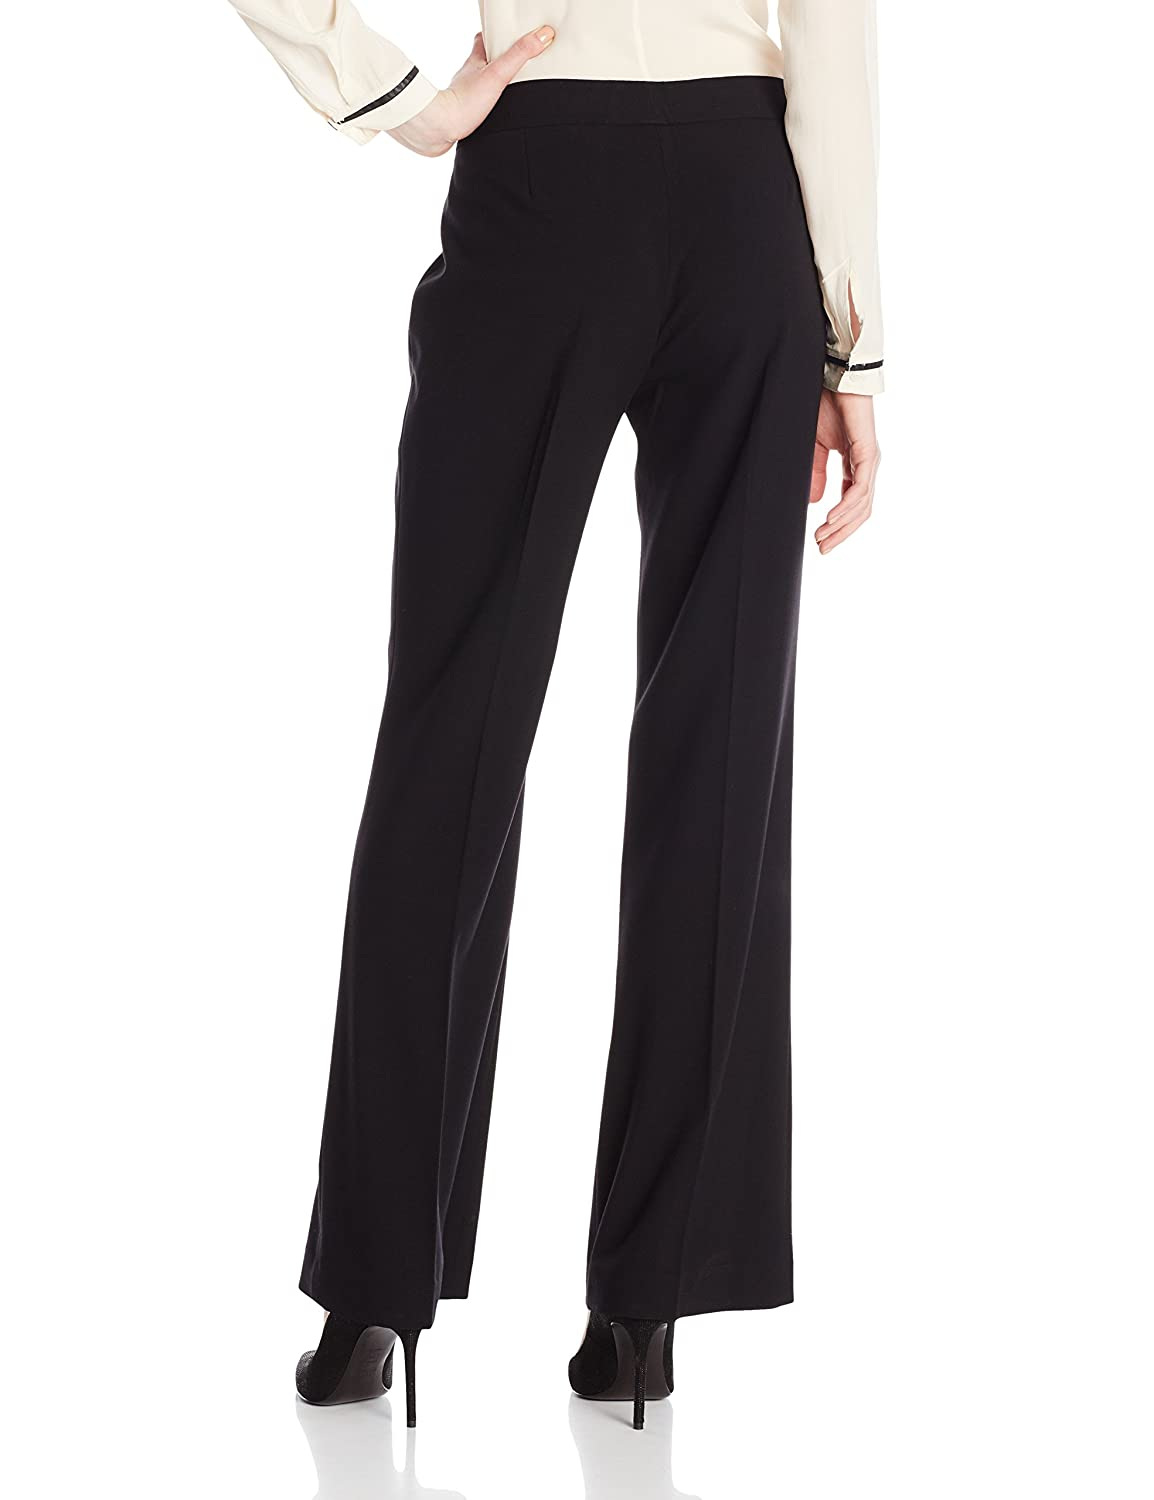 59e5903c15 Nine West Women s Bi Stretch Modern Pant at Amazon Women s Clothing store